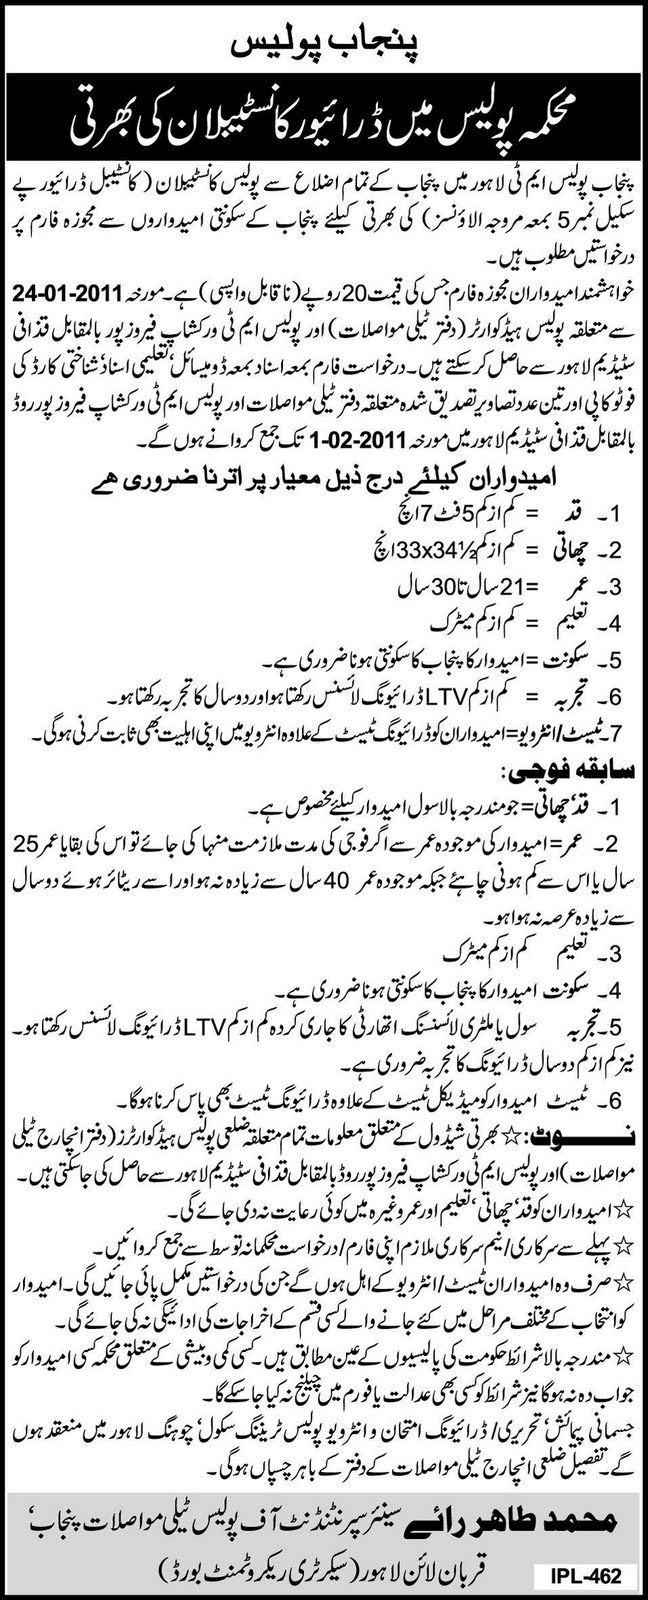 ADVERTISED JOBS ON NEWSPAPERS DAWN JANG EXPRESS: PUNJAB